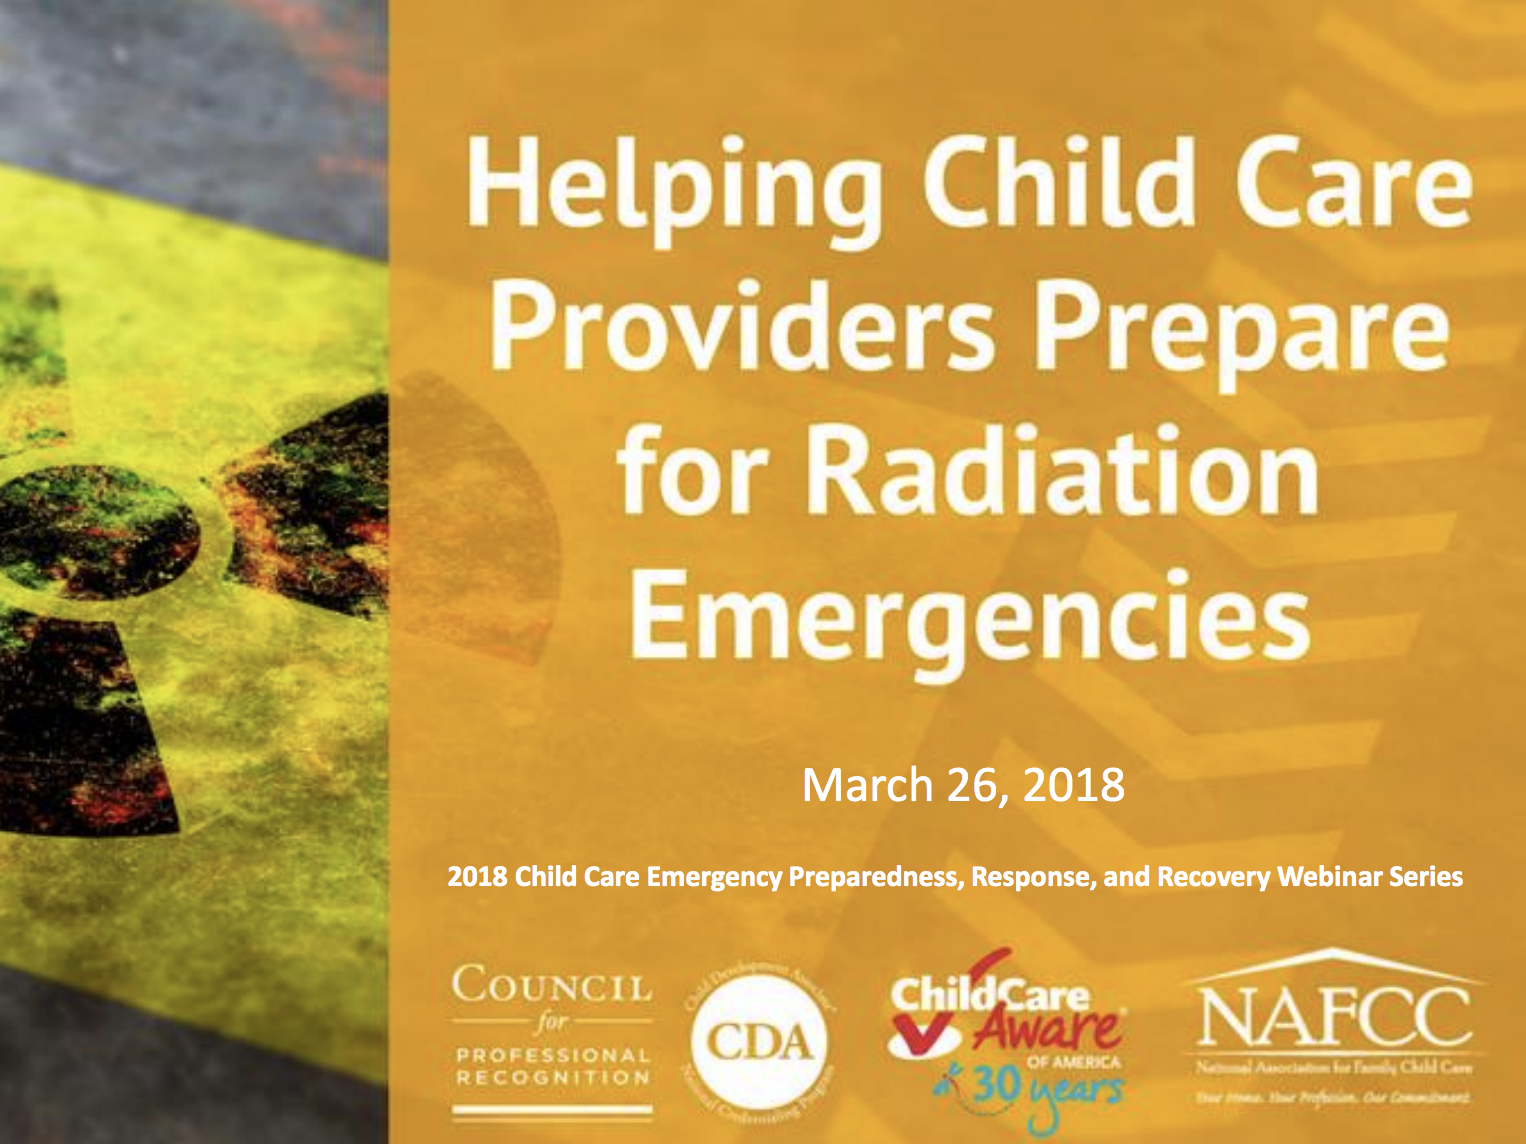 Heping Child Care Providers Prepare for Radiation Emergencies